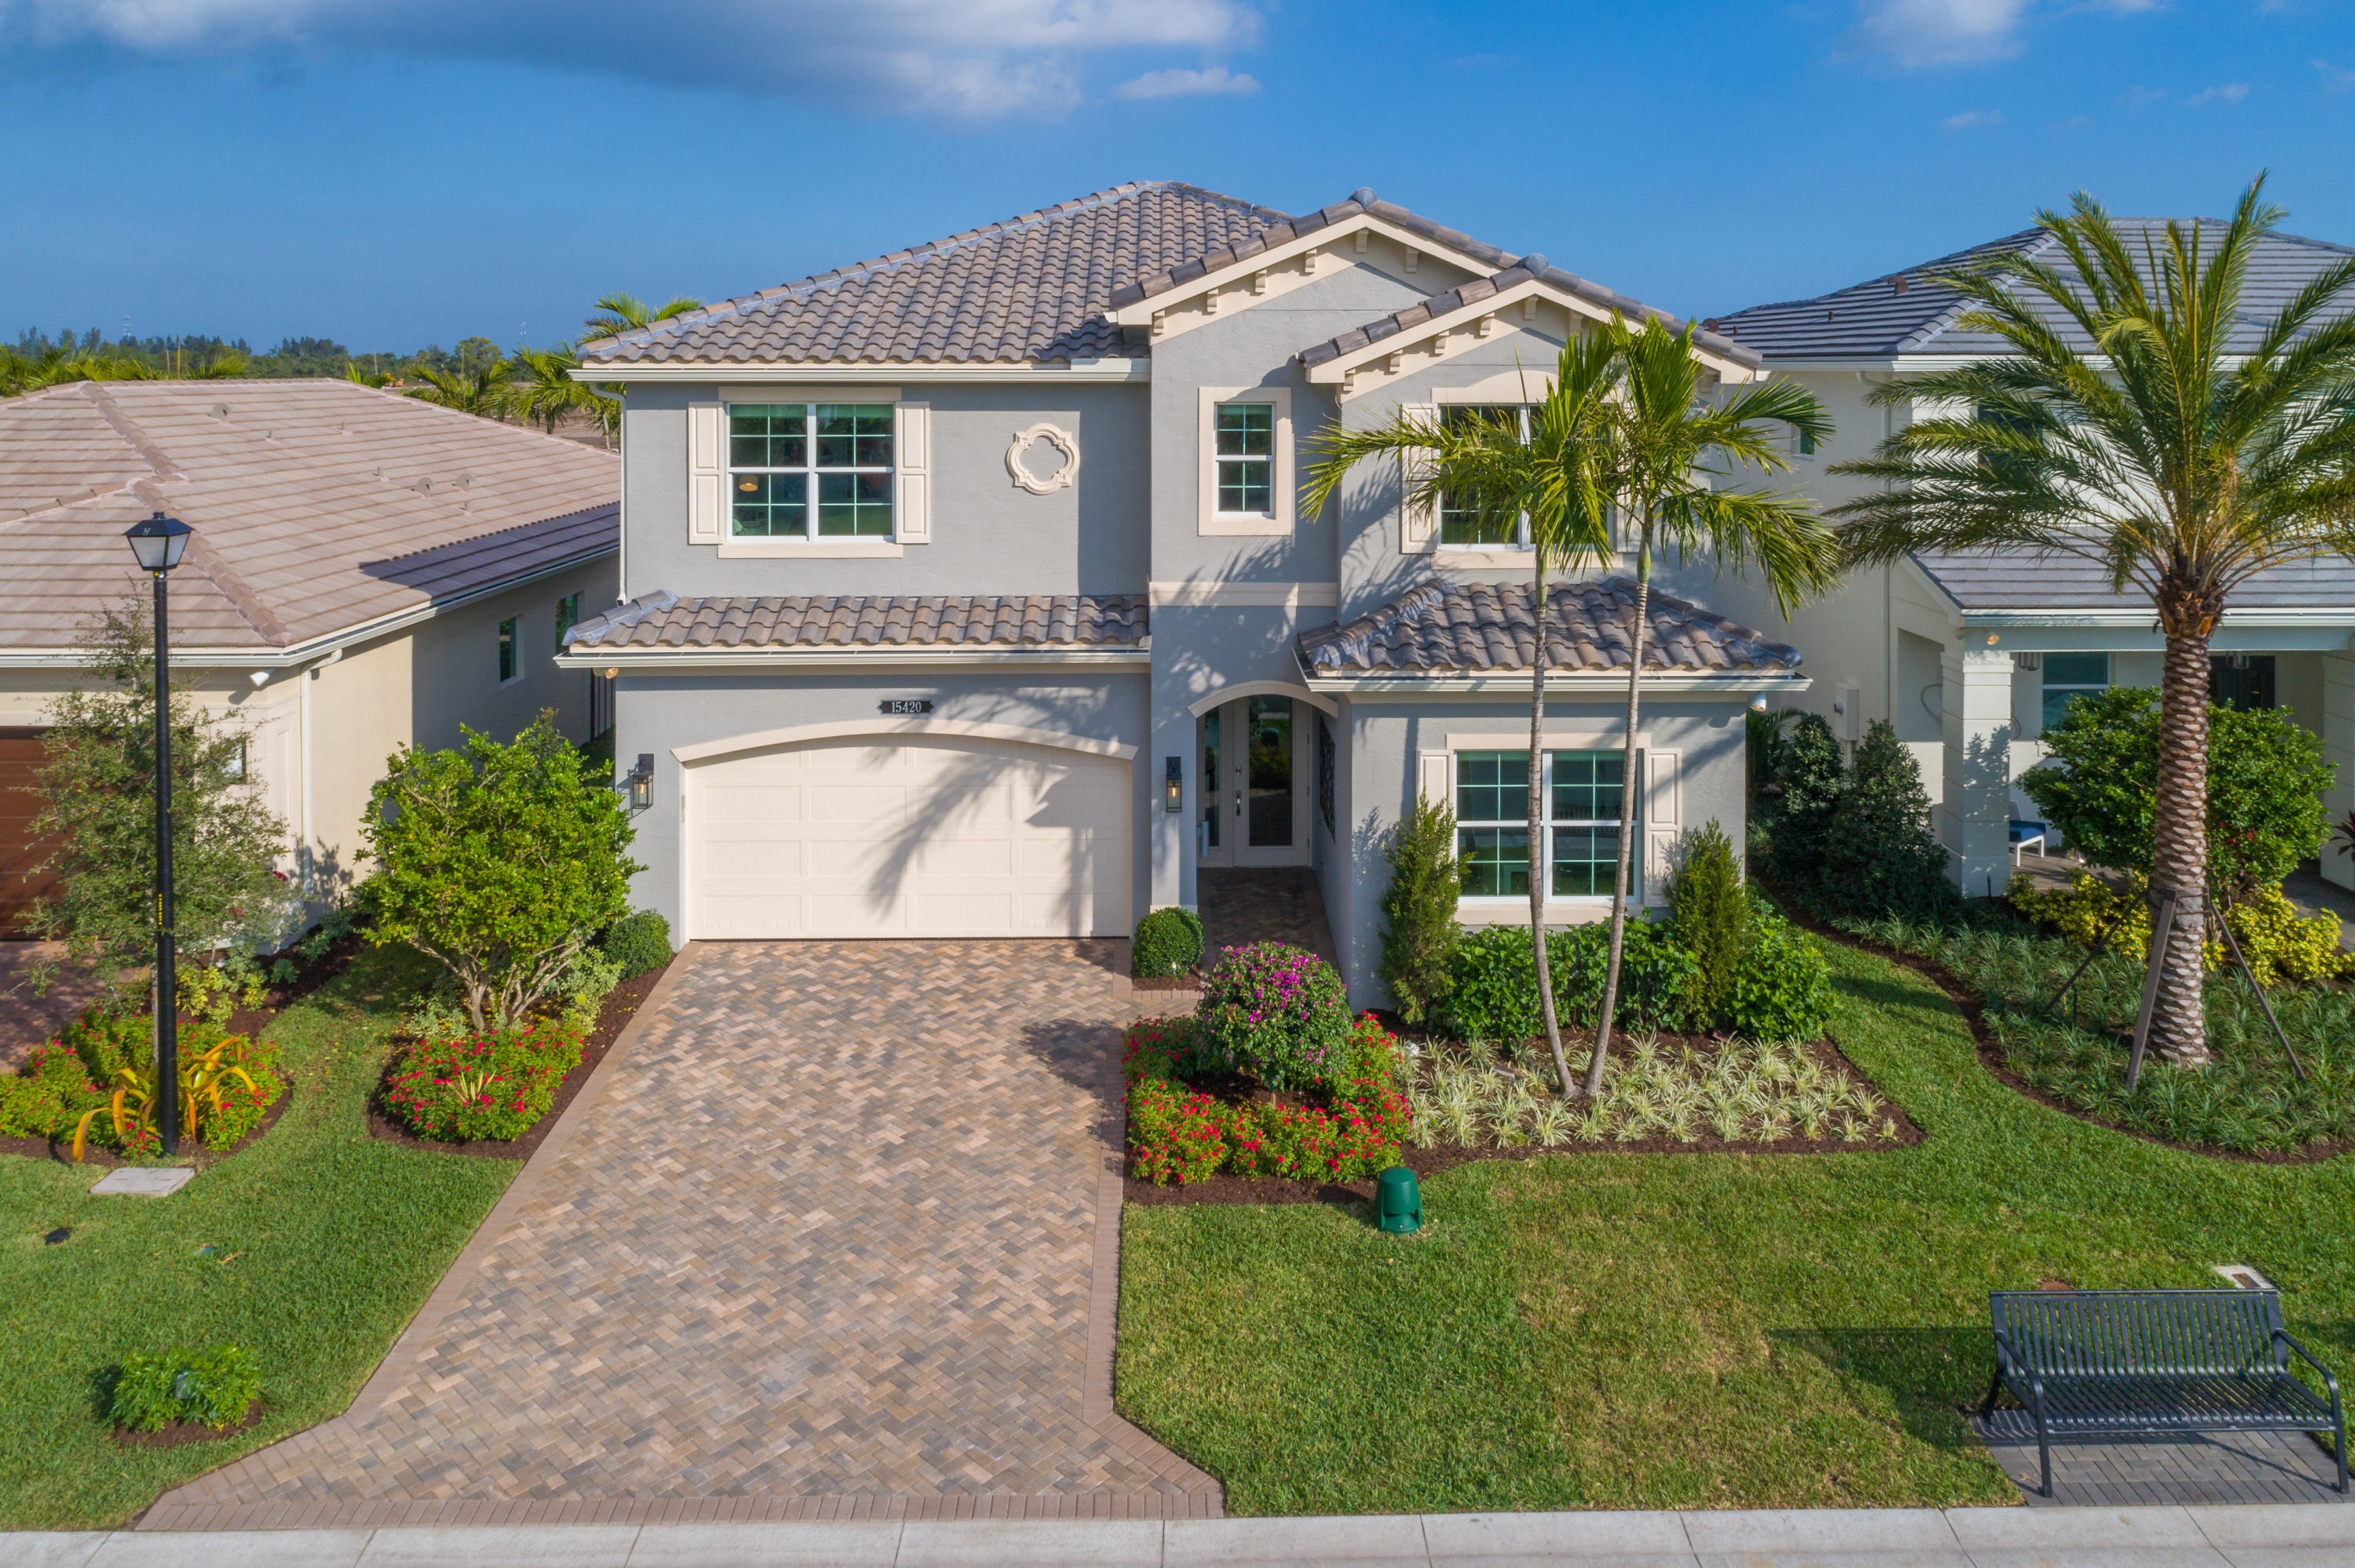 DAKOTA home 15257 Waterleaf Lane Delray Beach FL 33446